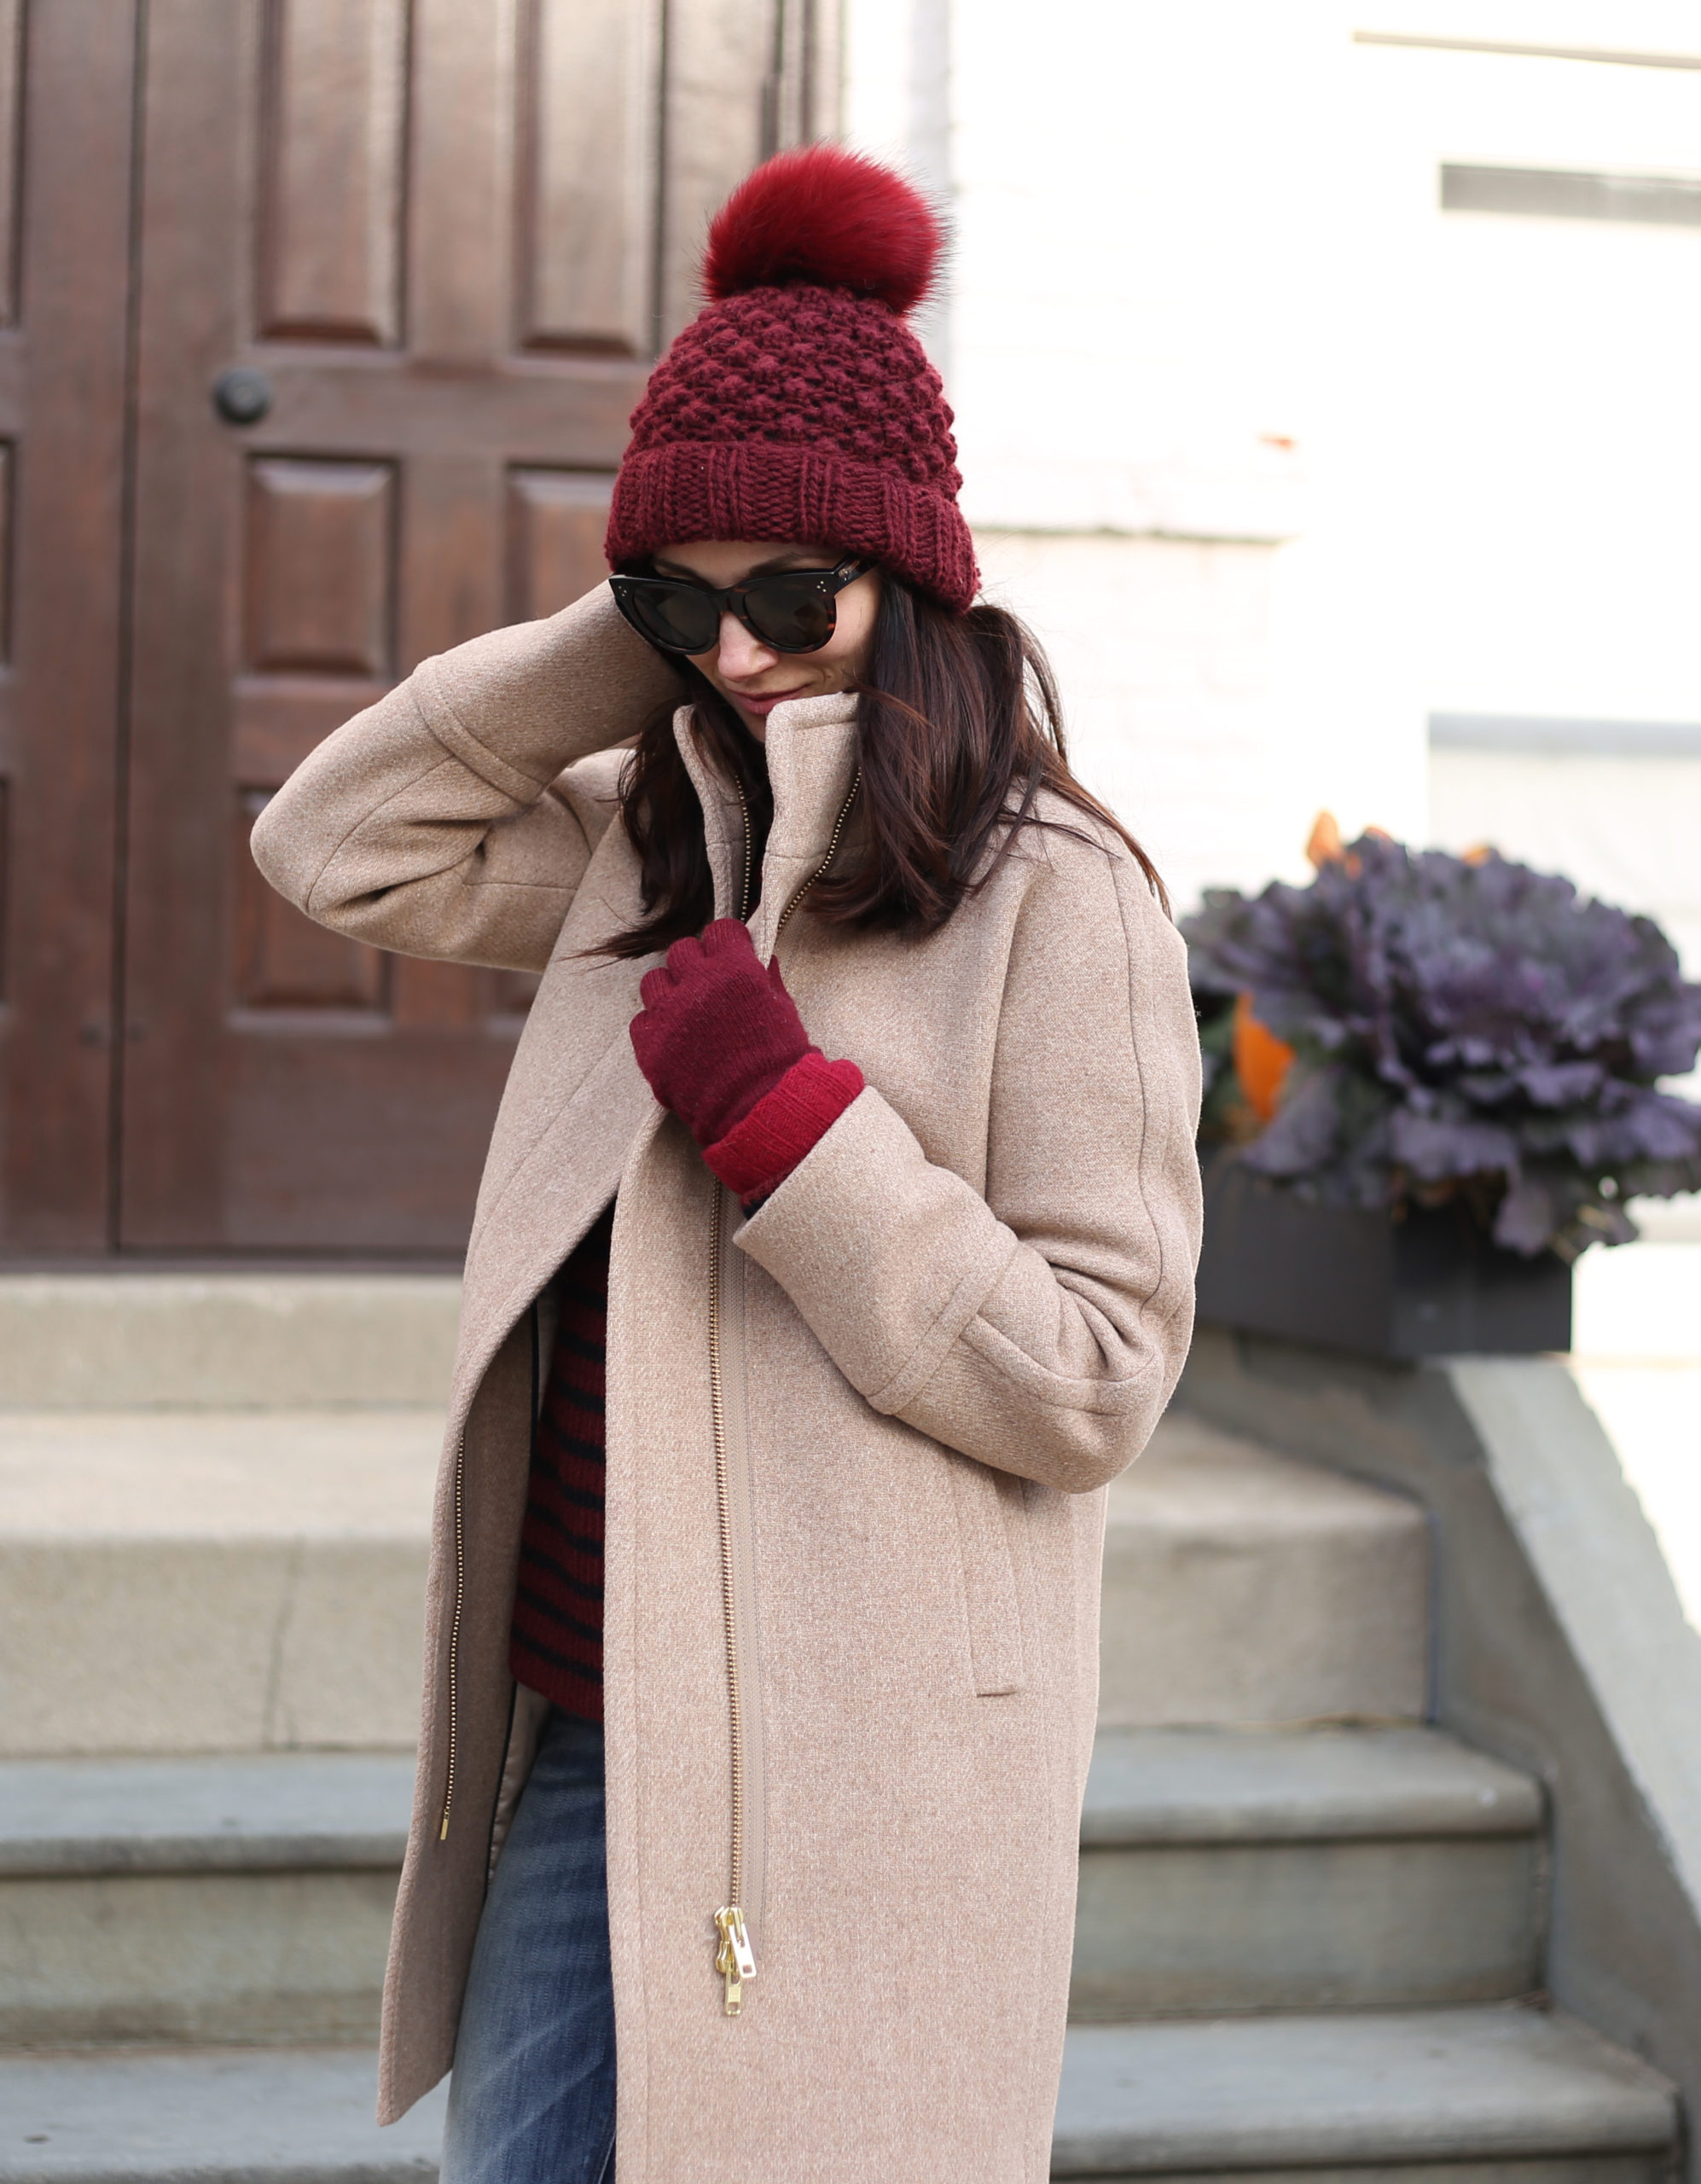 Coats, Hats and Gloves & A Giveaway